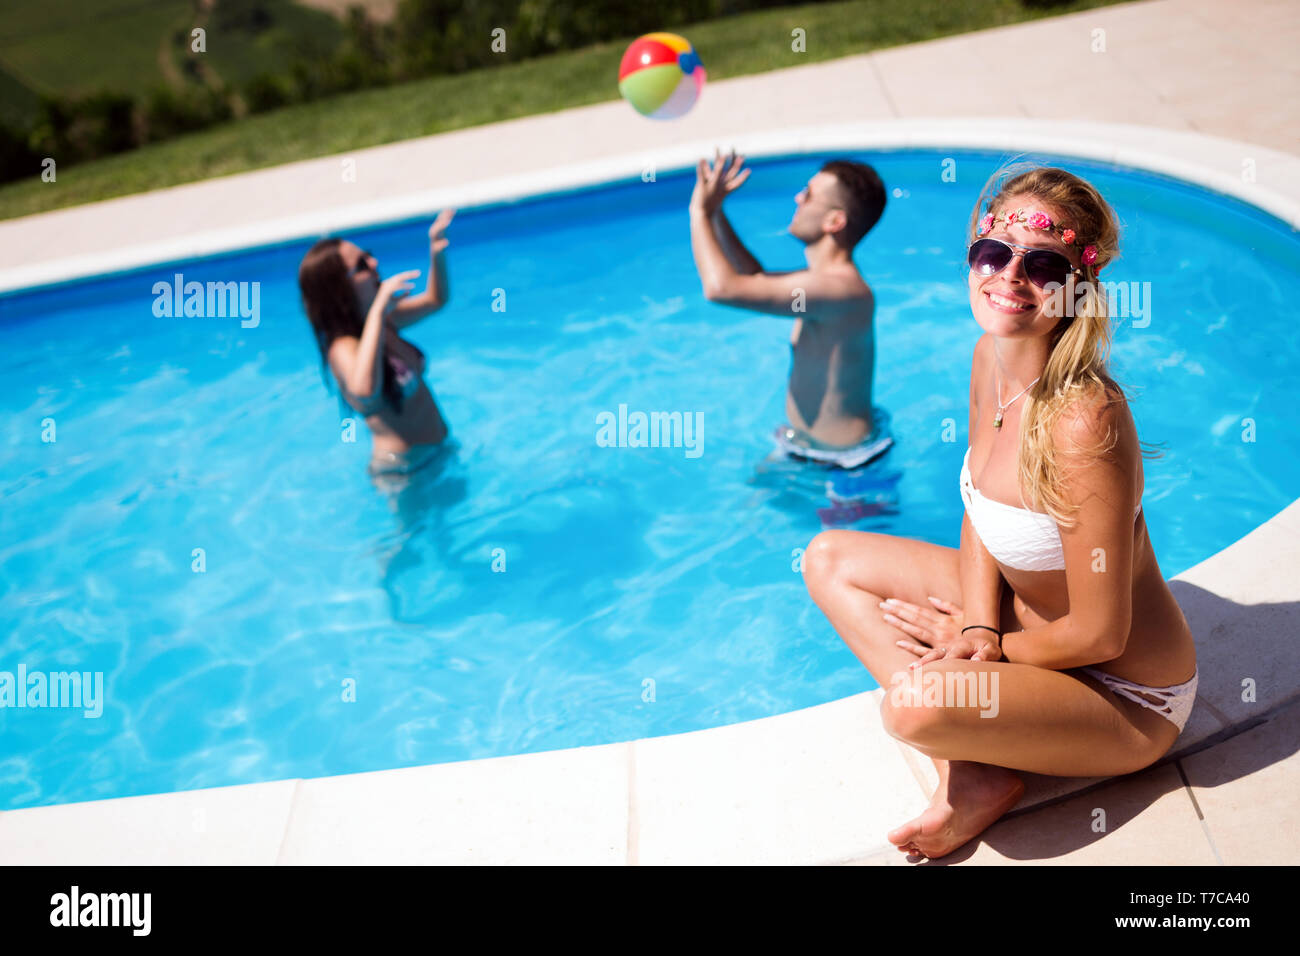 Friends playing ball games in pool Stock Photo: 245519120 - Alamy